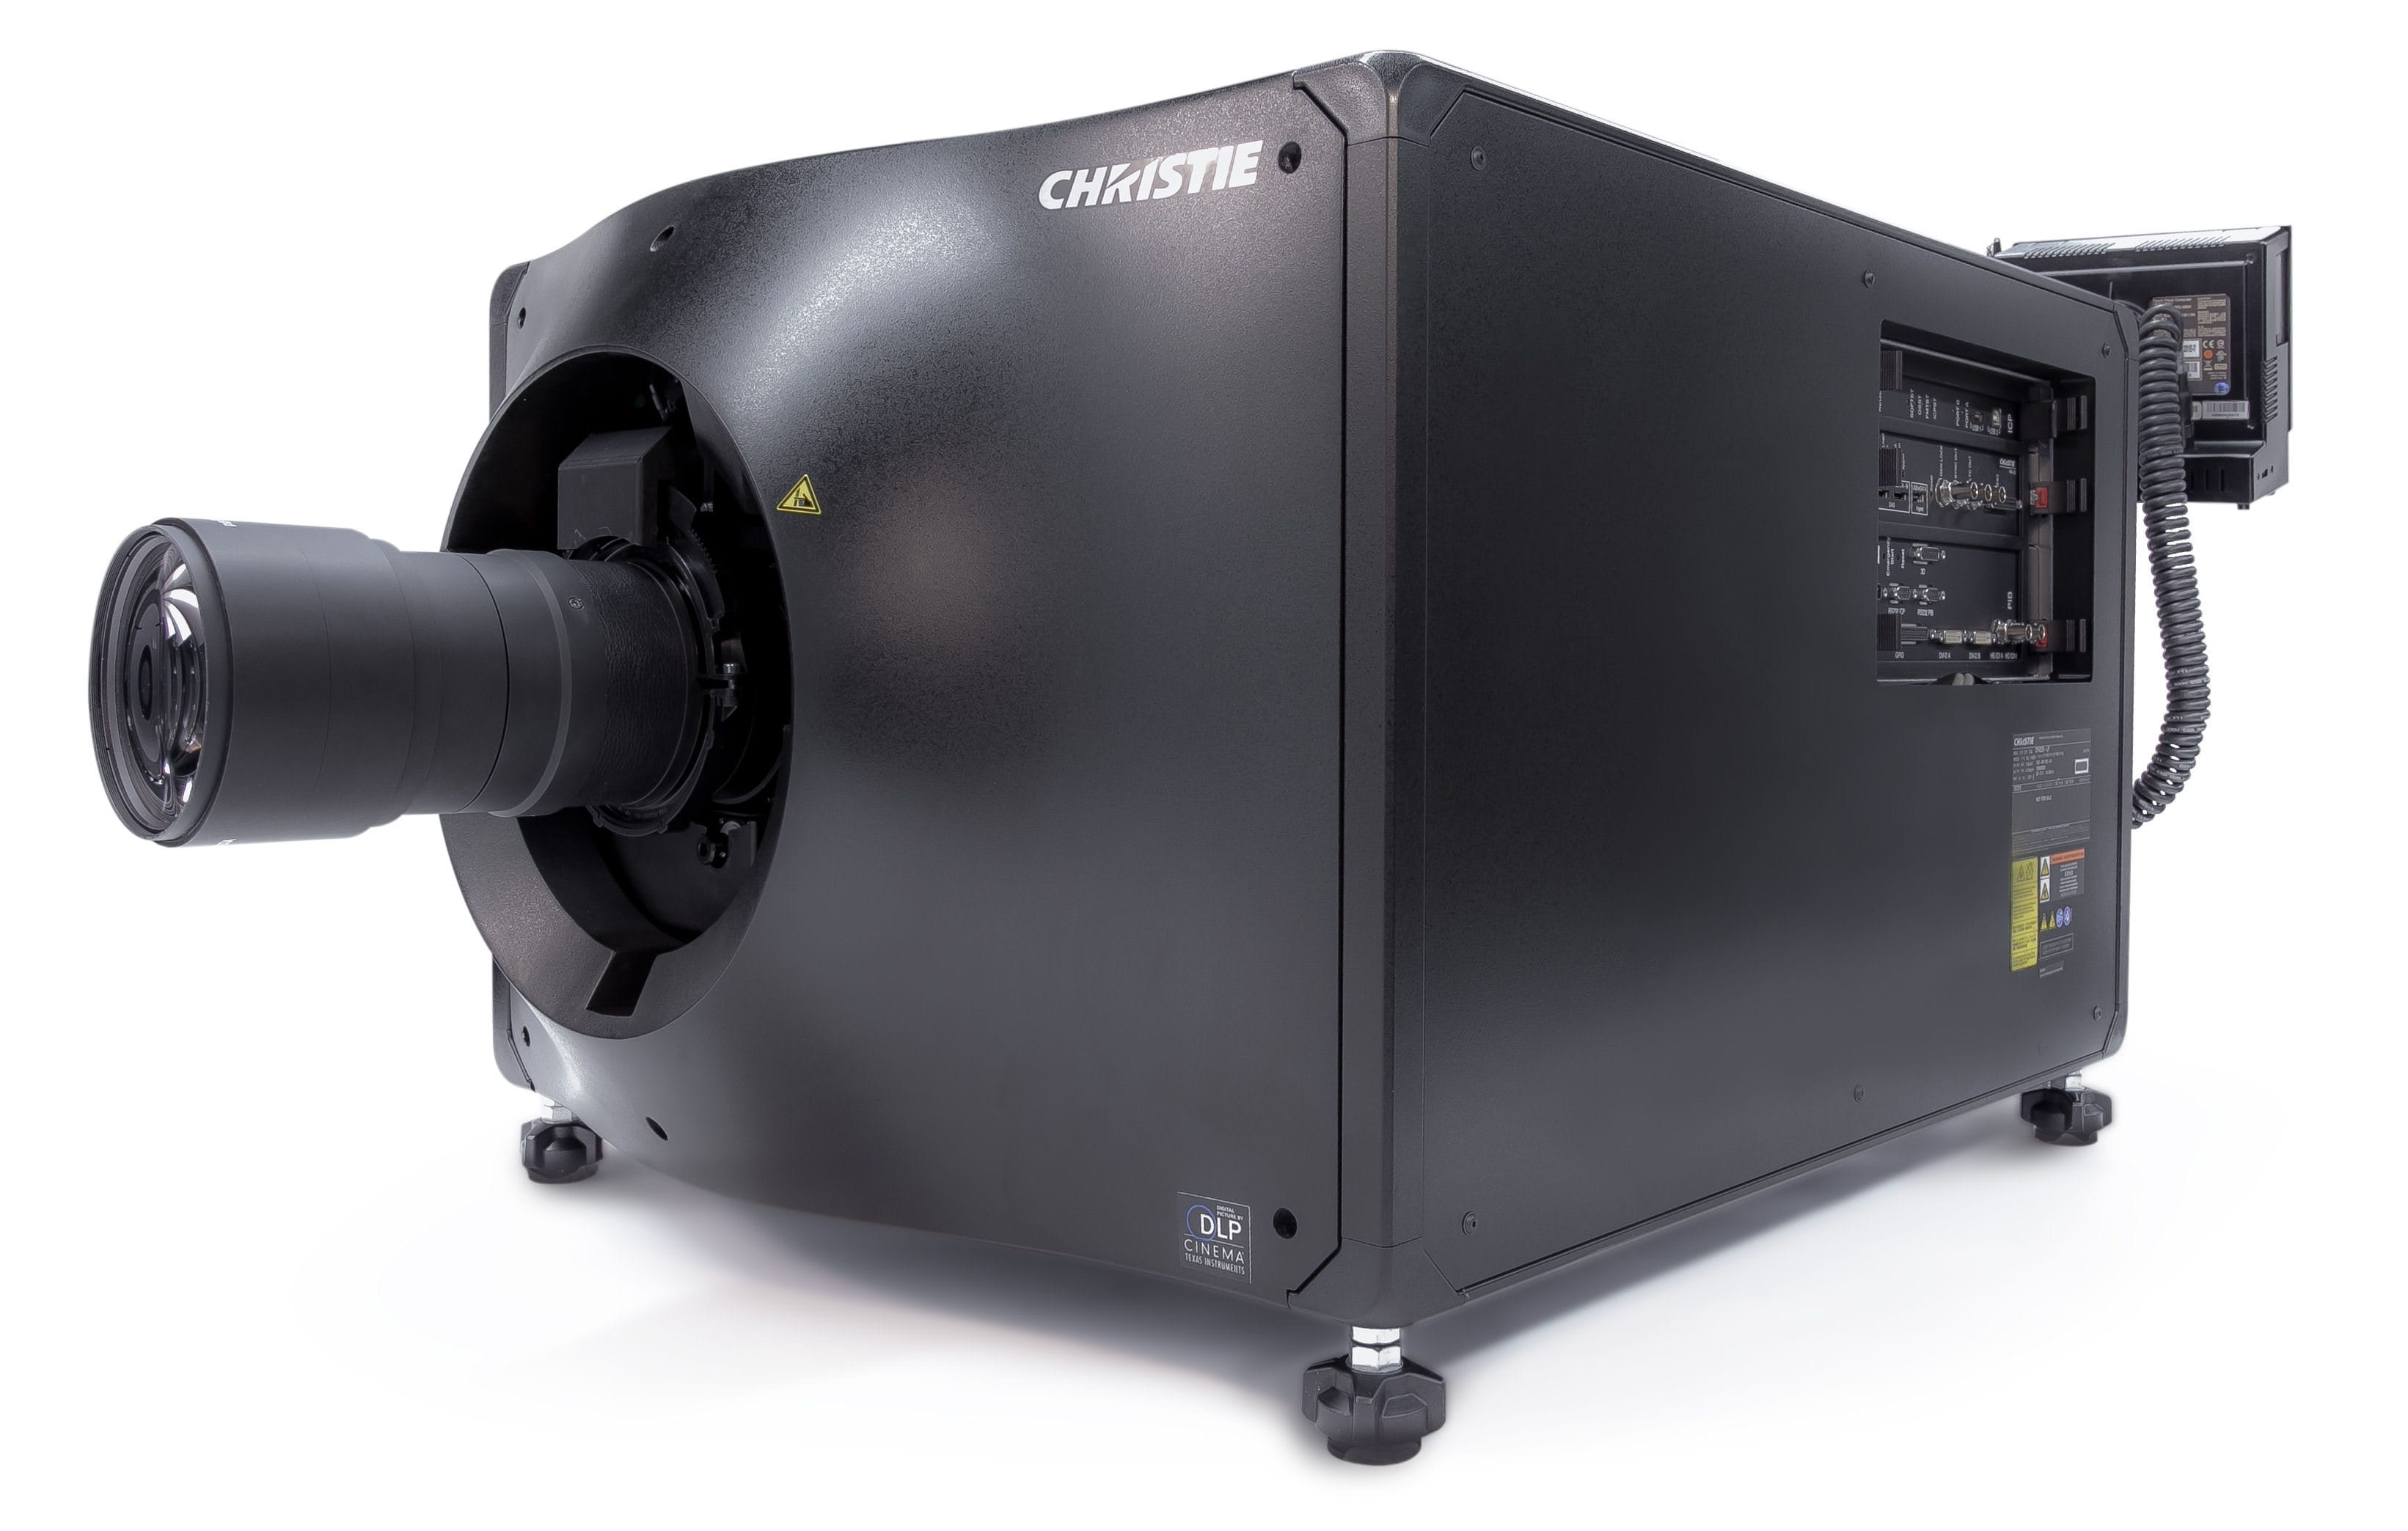 First Pure Rgb Laser Projector For Mainstream Cinema